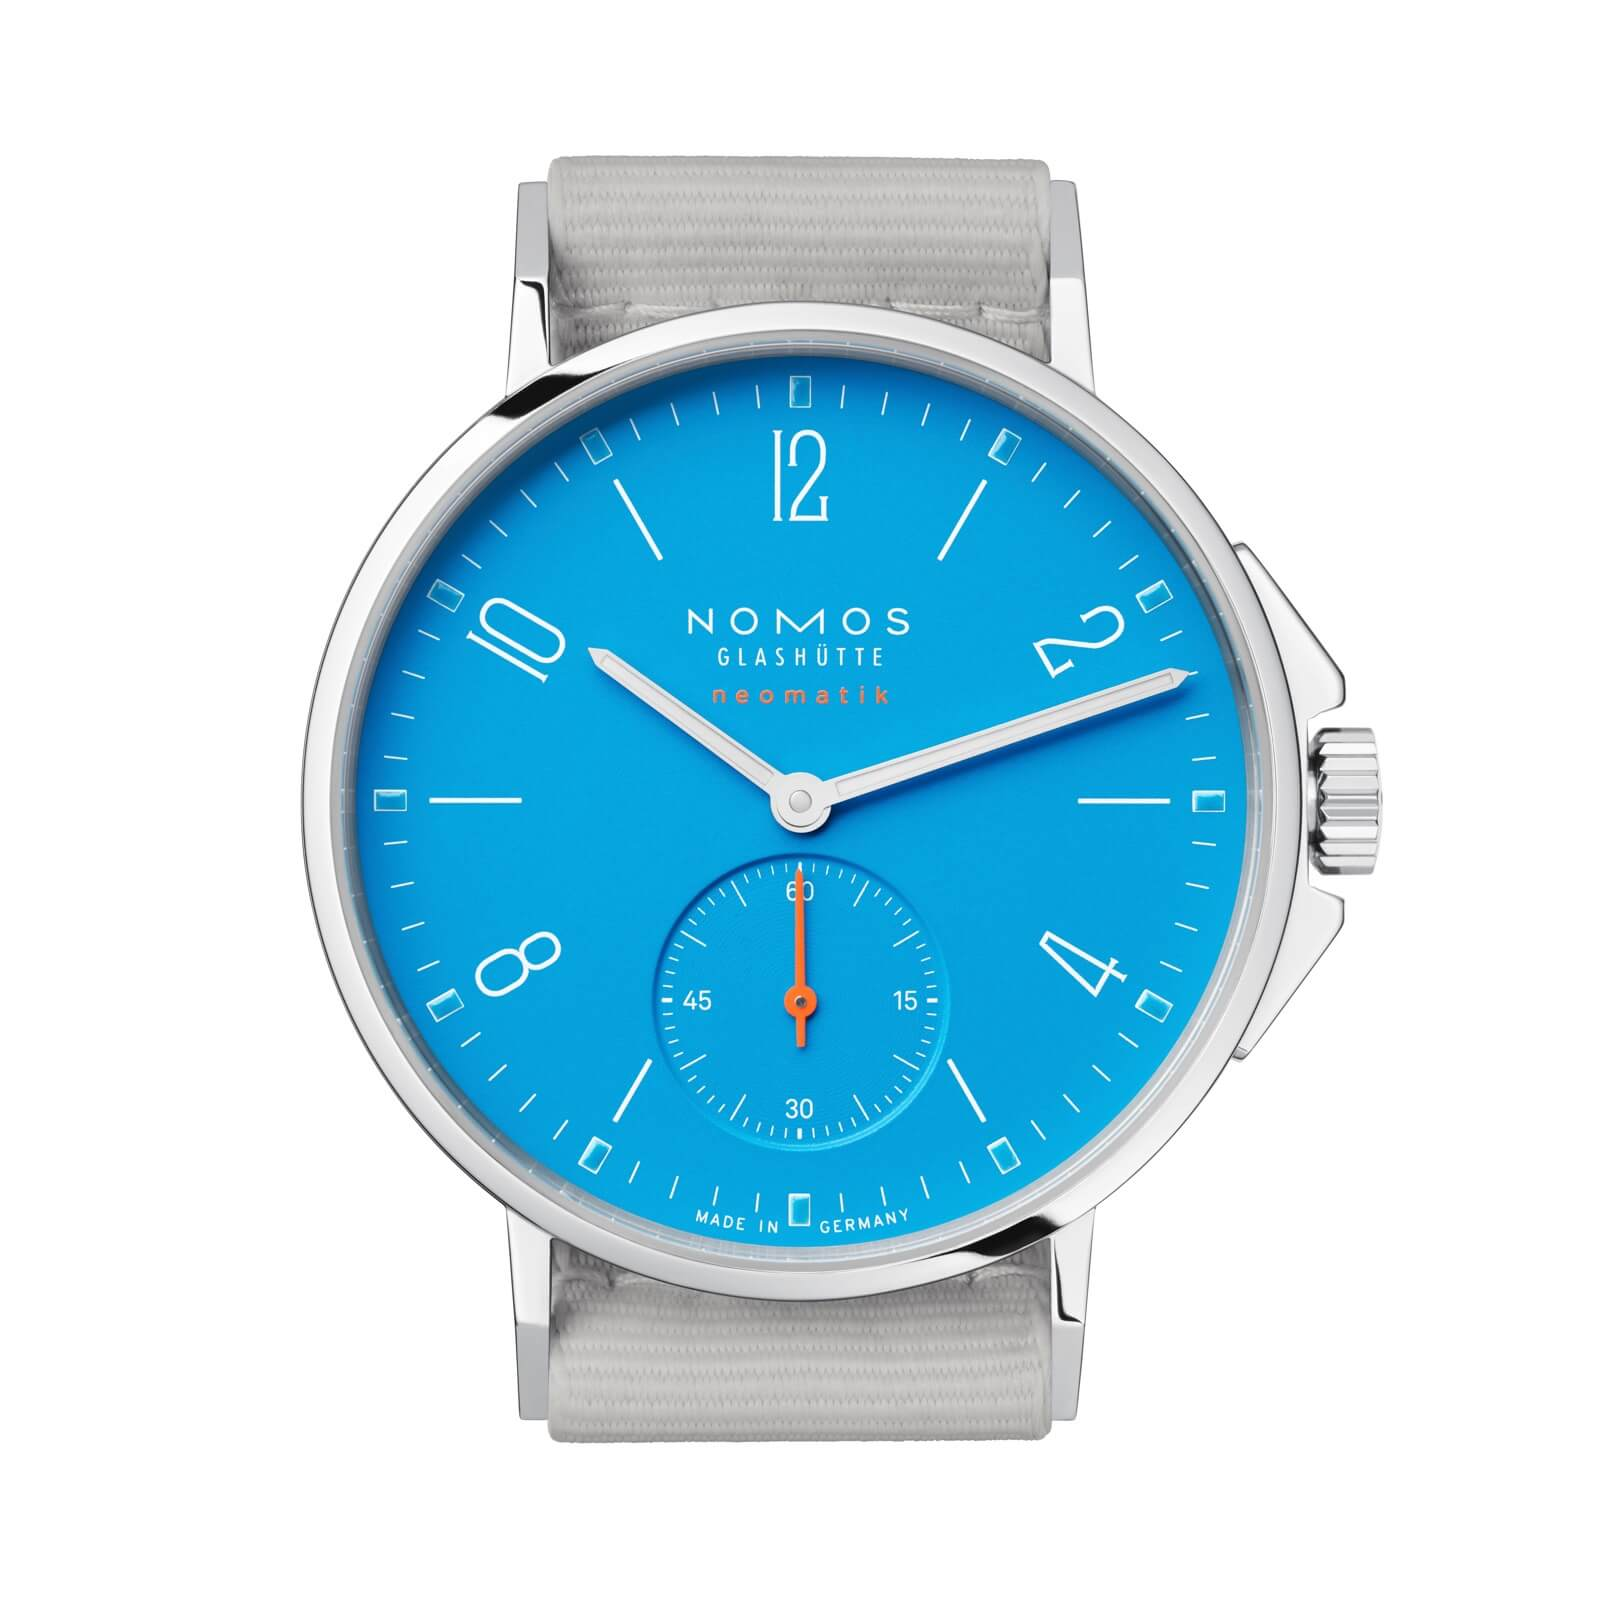 Nomos Glashütte Ahoi Neomatik Watch in blue